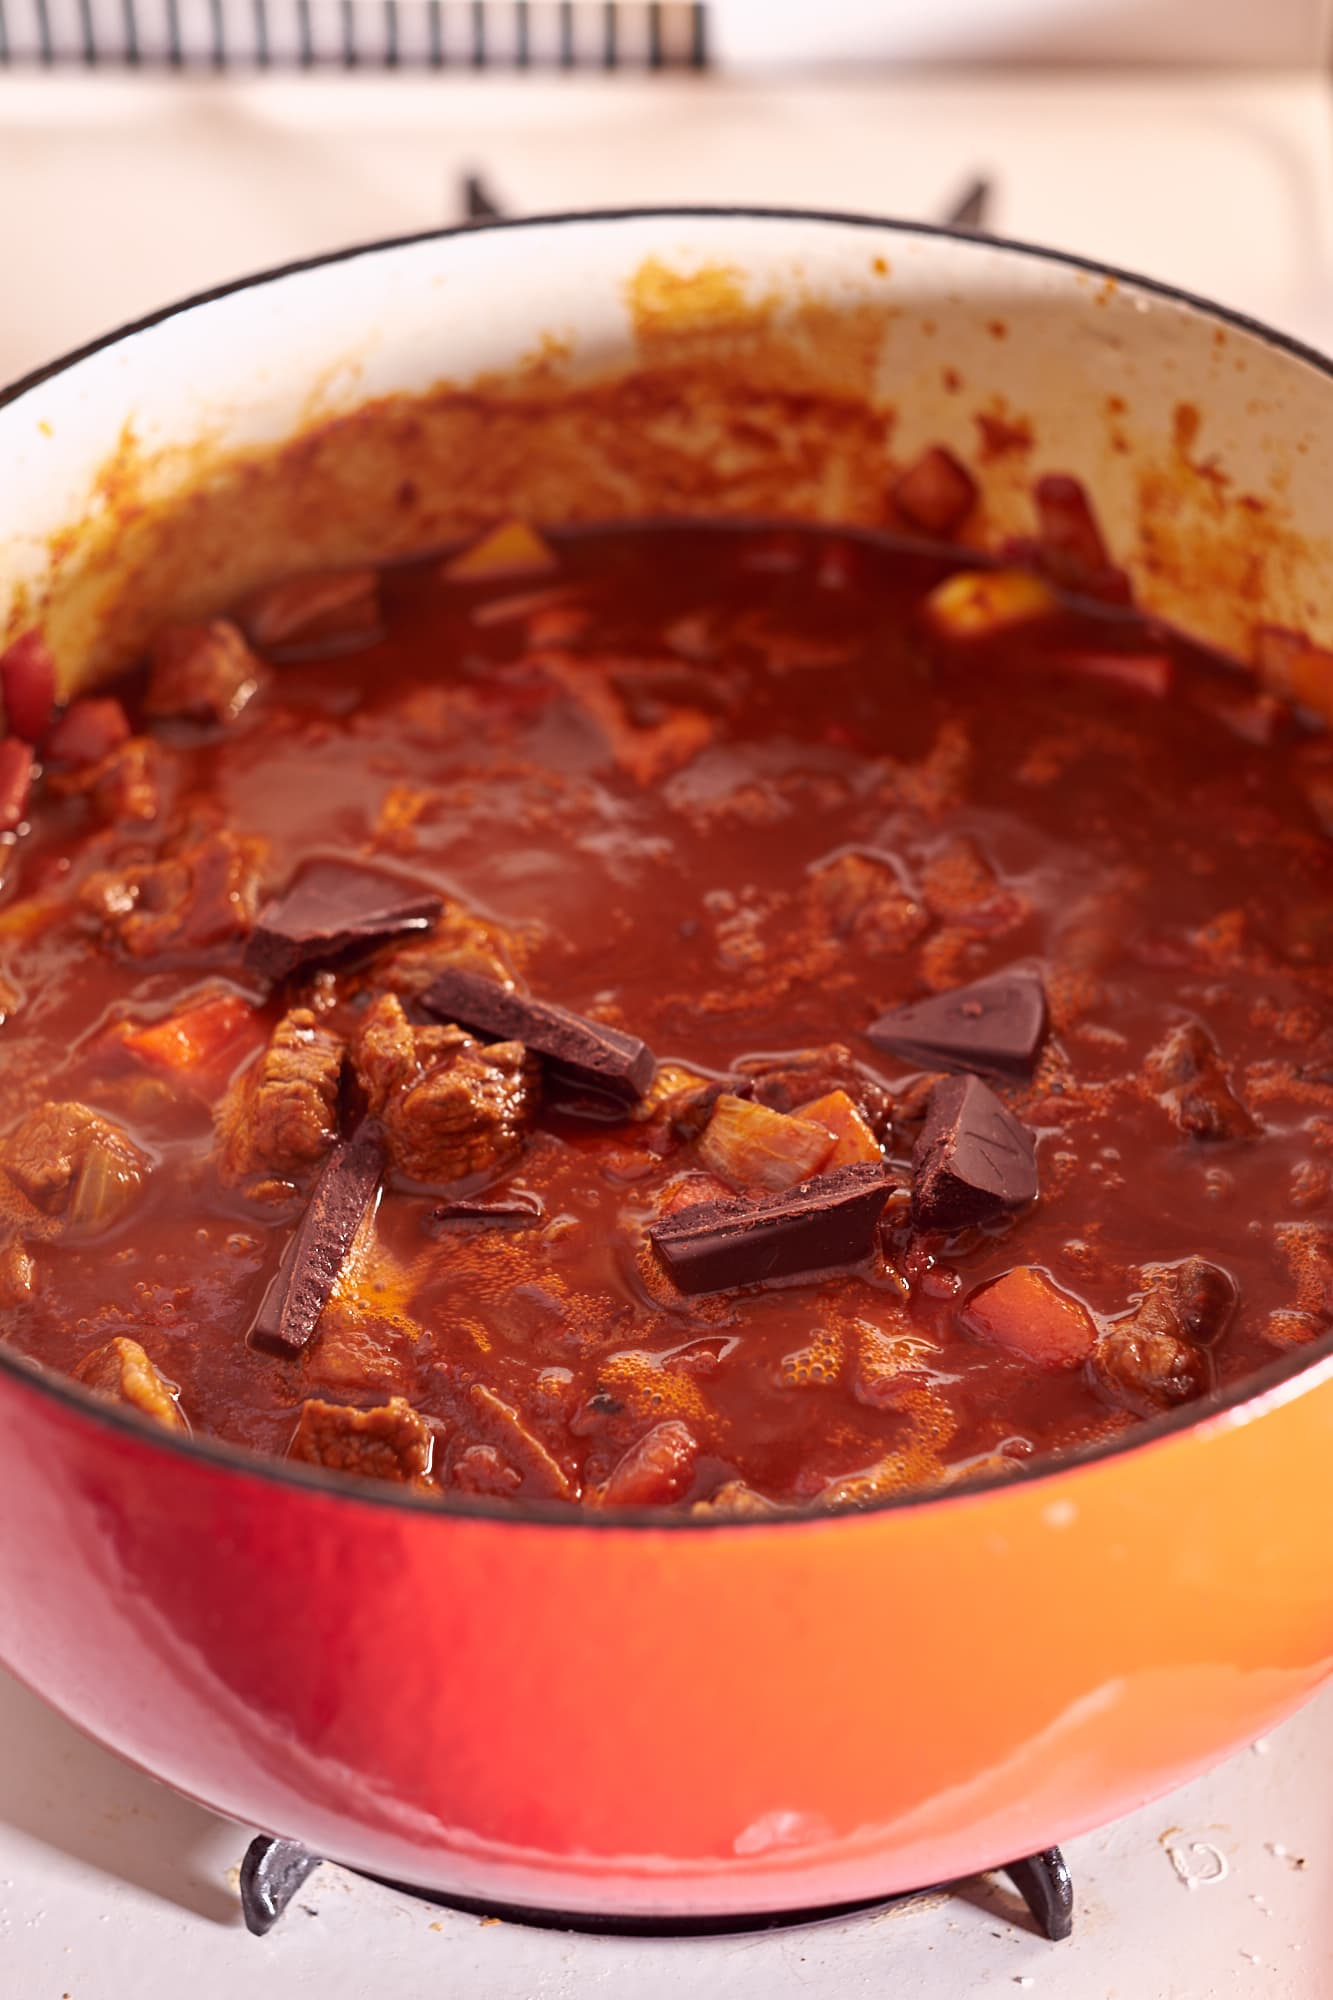 Three Chili Short Rib Chili